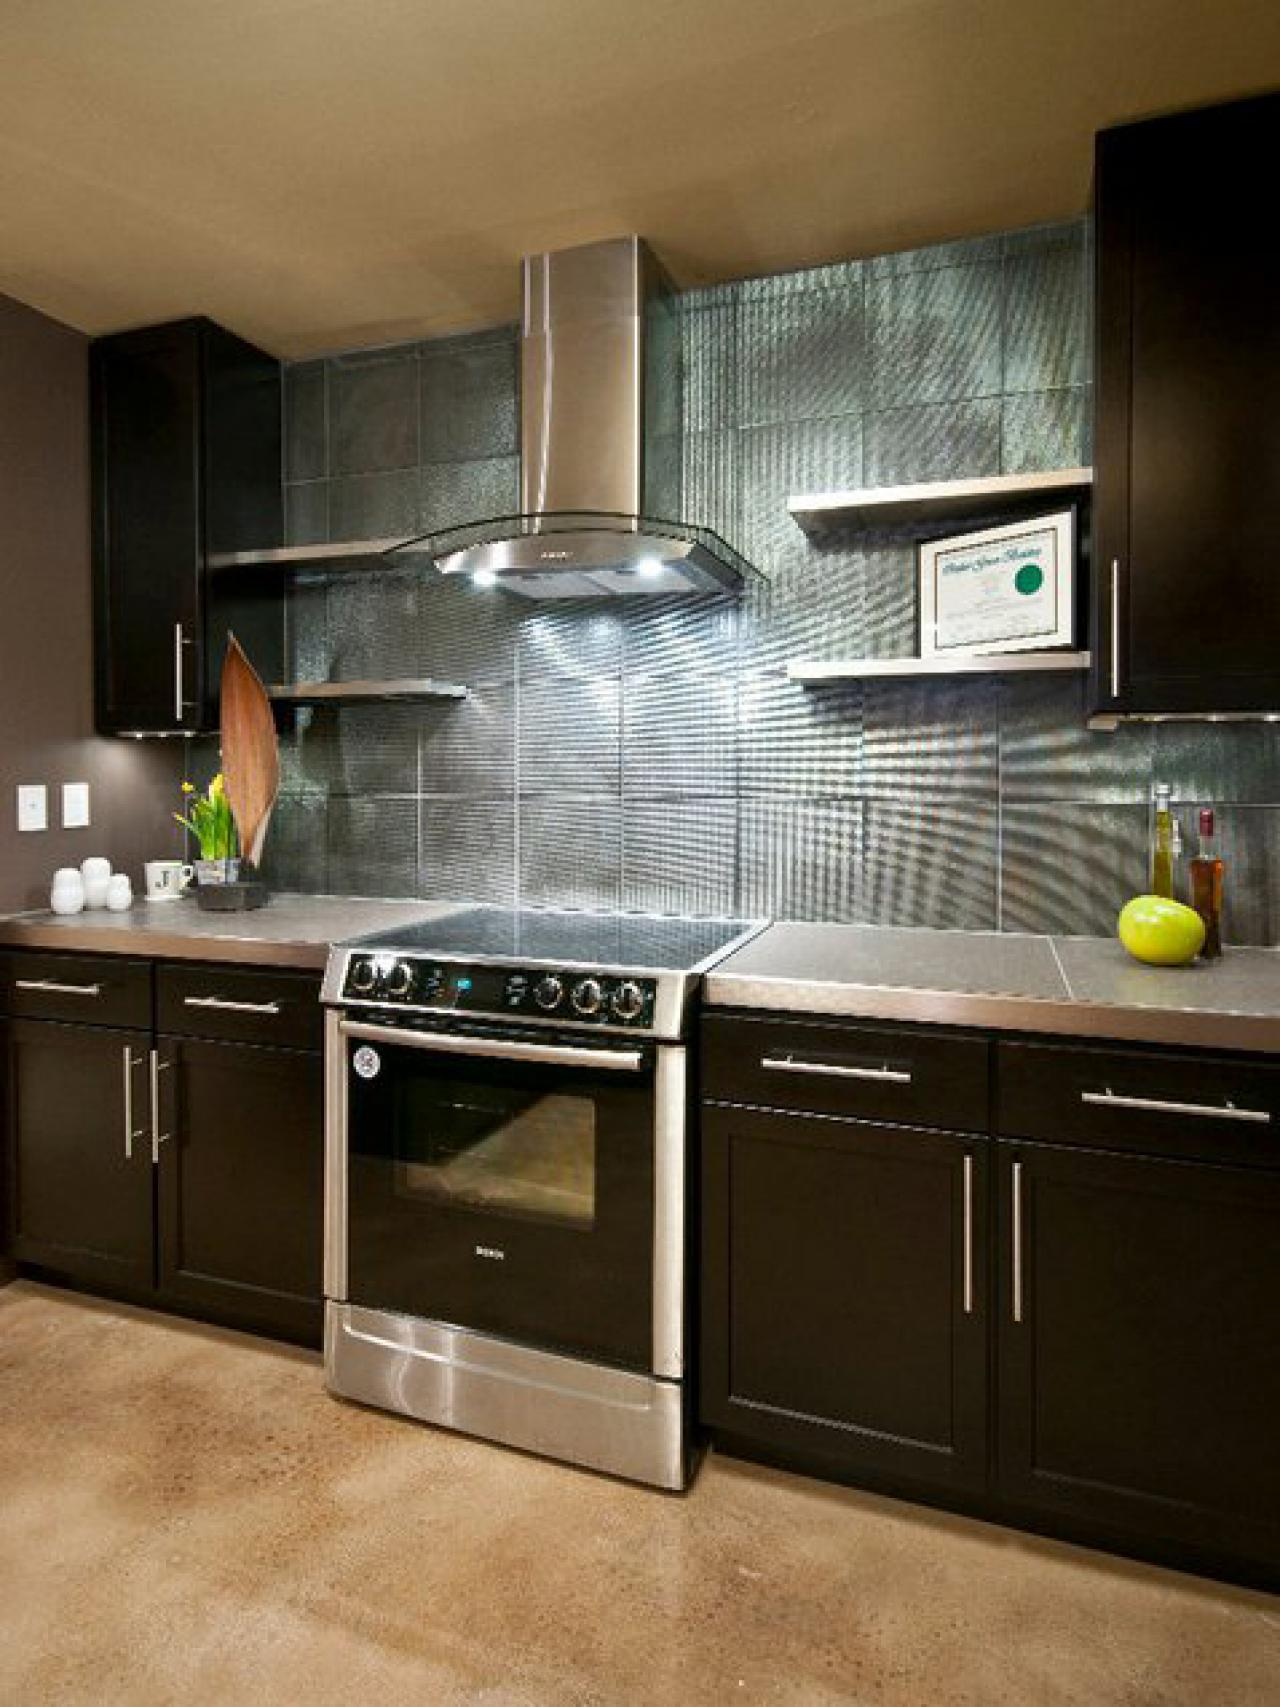 Kitchen Backsplash Options do-it-yourself diy kitchen backsplash ideas + hgtv pictures | hgtv